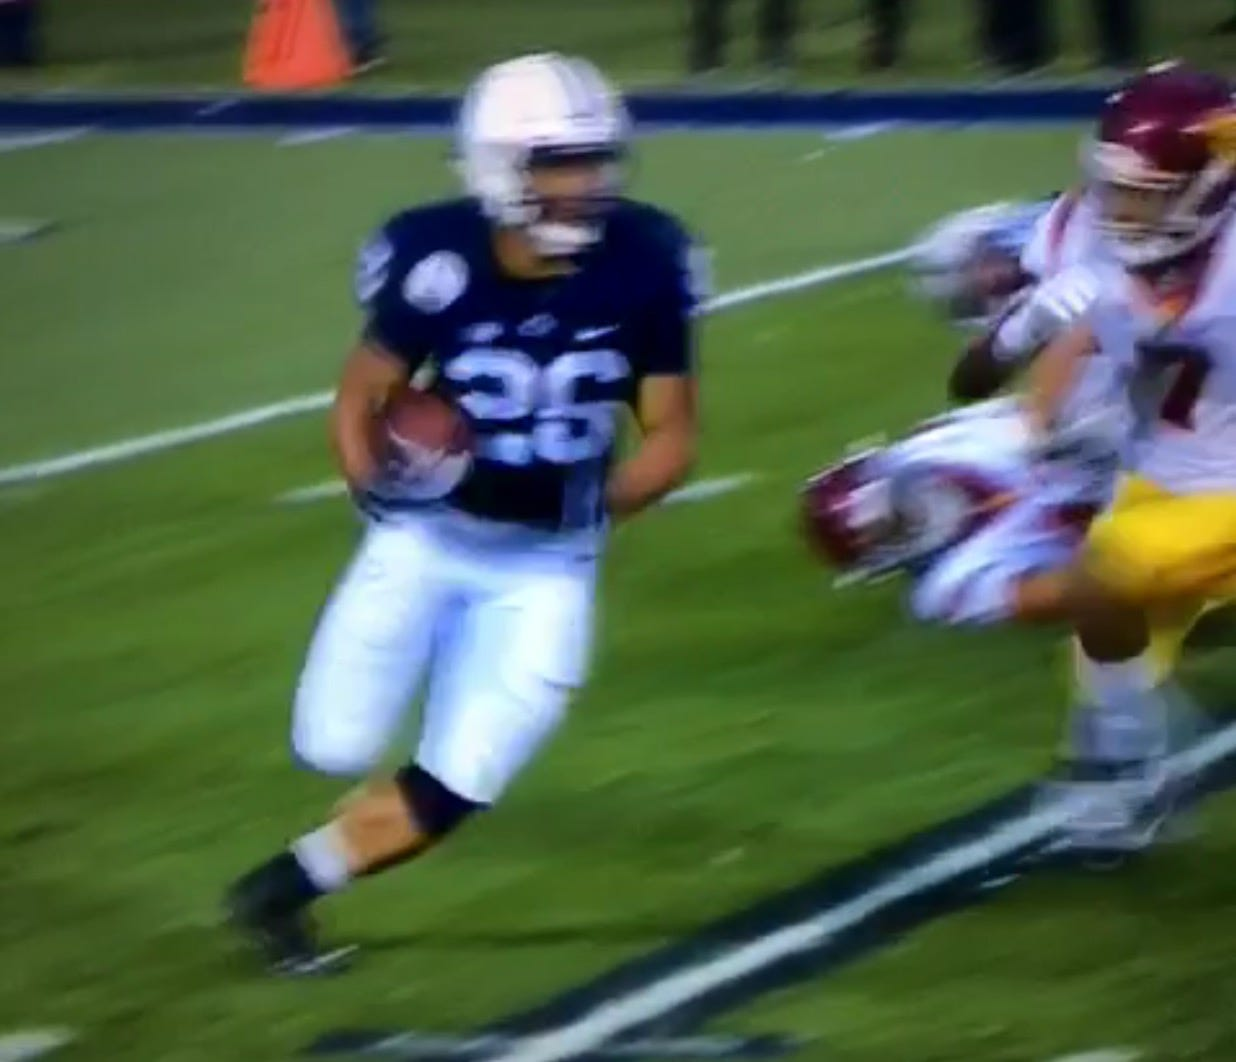 Saquon Barkley Put The Entire Trojans Defense In A Blender